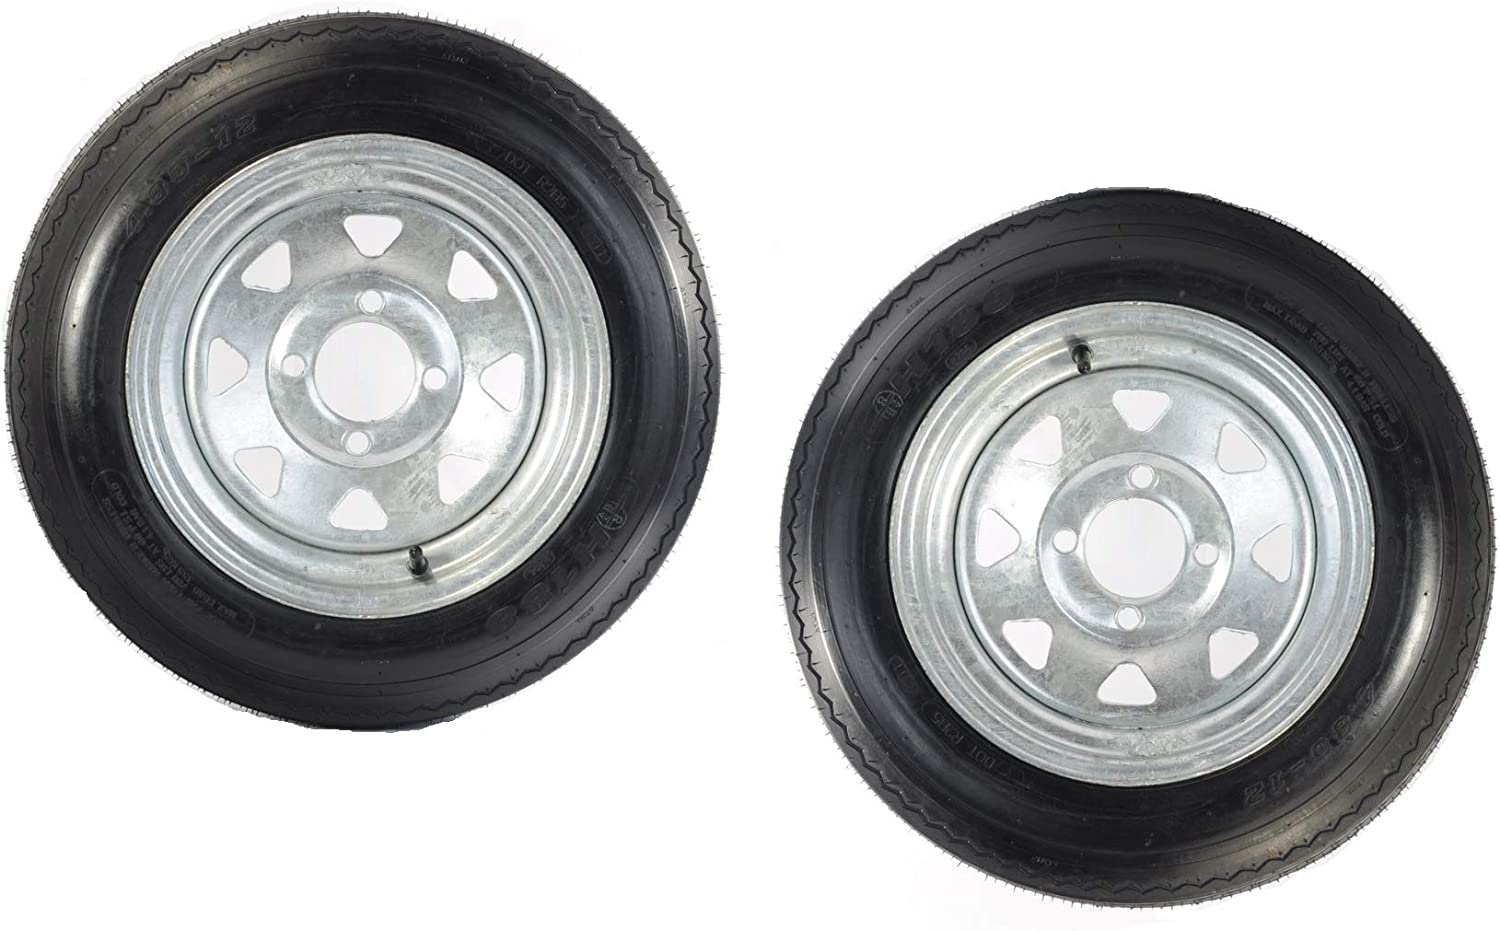 2-Pk Trailer Tire Rim 4.80-12 12 in. Spo Galvanized Sales results No. Inventory cleanup selling sale 1 C Load Lug 4